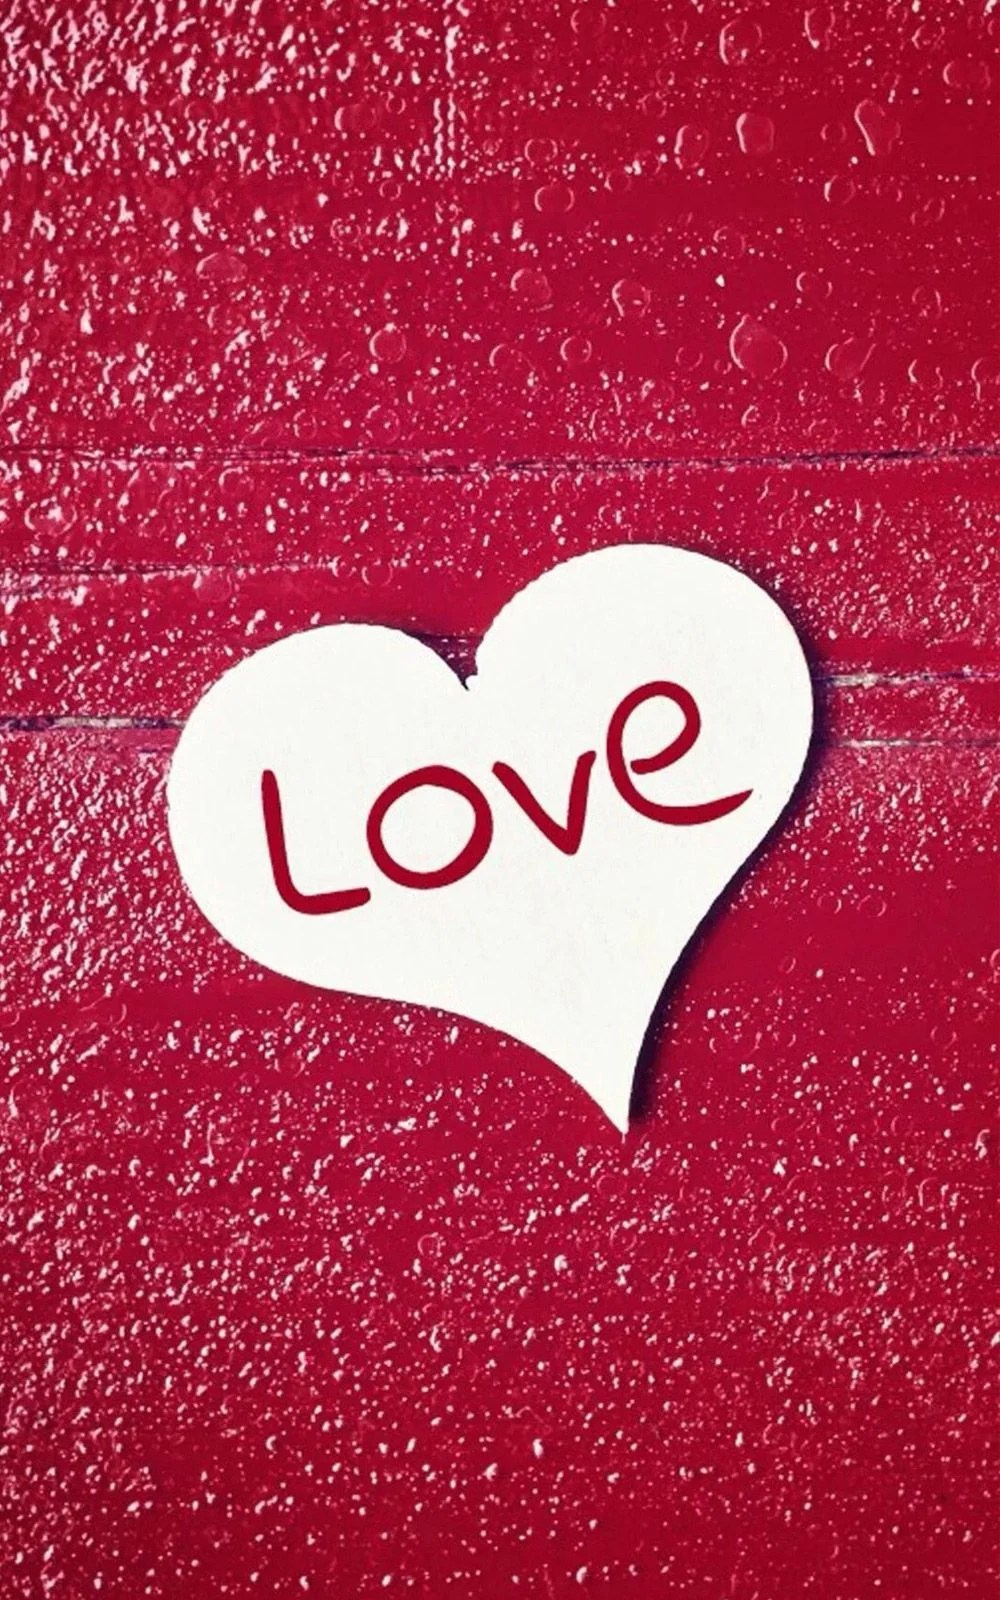 love wallpapers top free